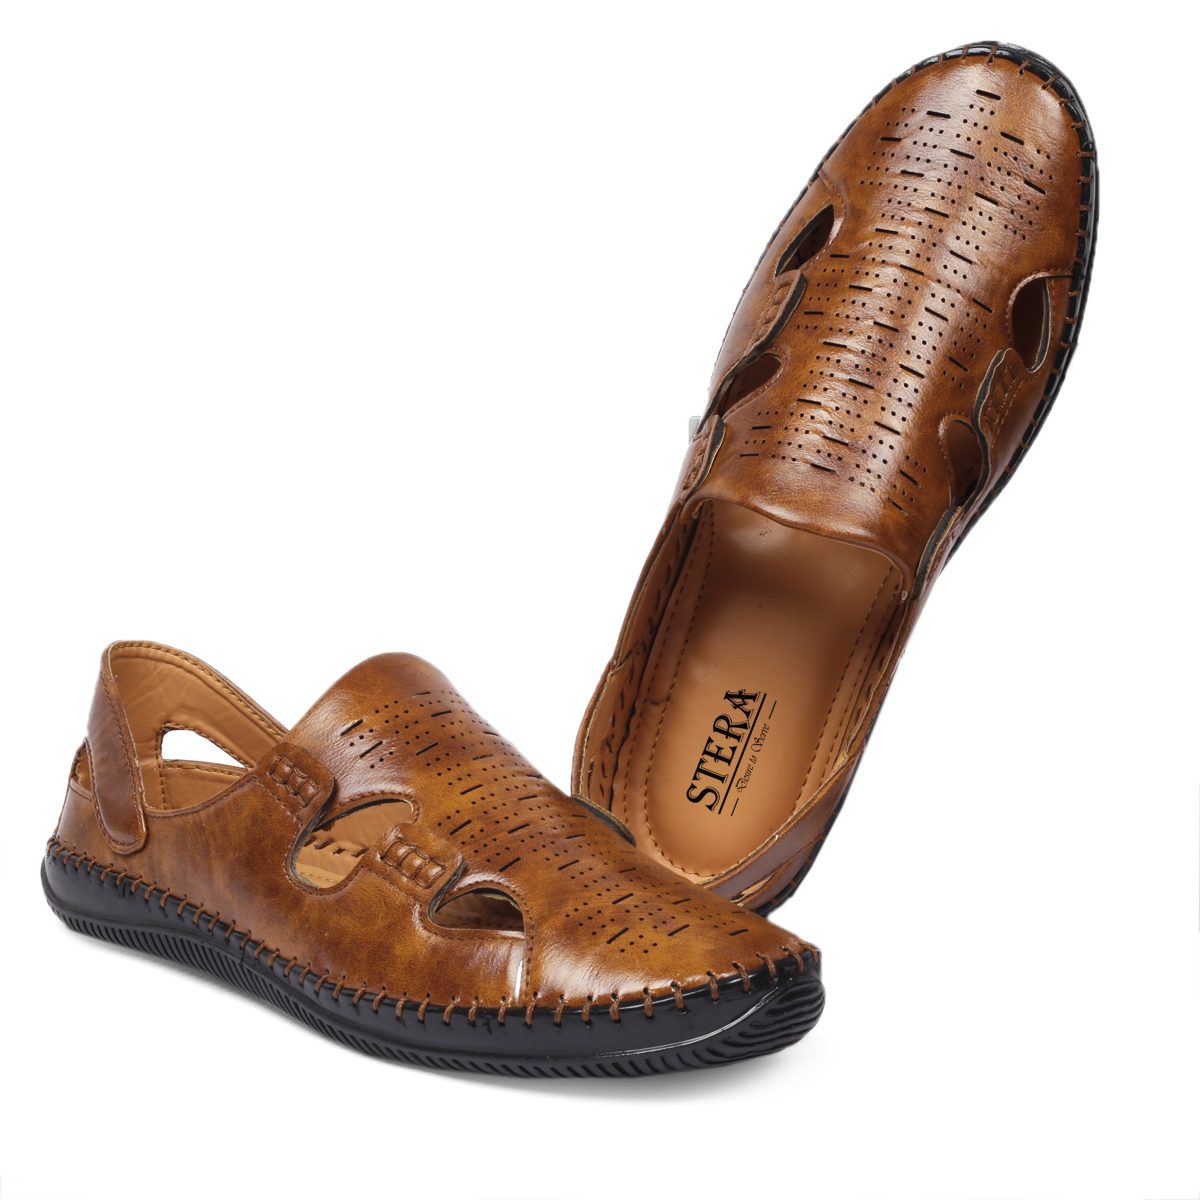 STERA MEN'S CLASSIC & TRADITIONAL WEAR ROMAN SANDAL WITH STITCH SOLE NHT-SAND-7004-TAN (TAN,6-10,8 PAIR)